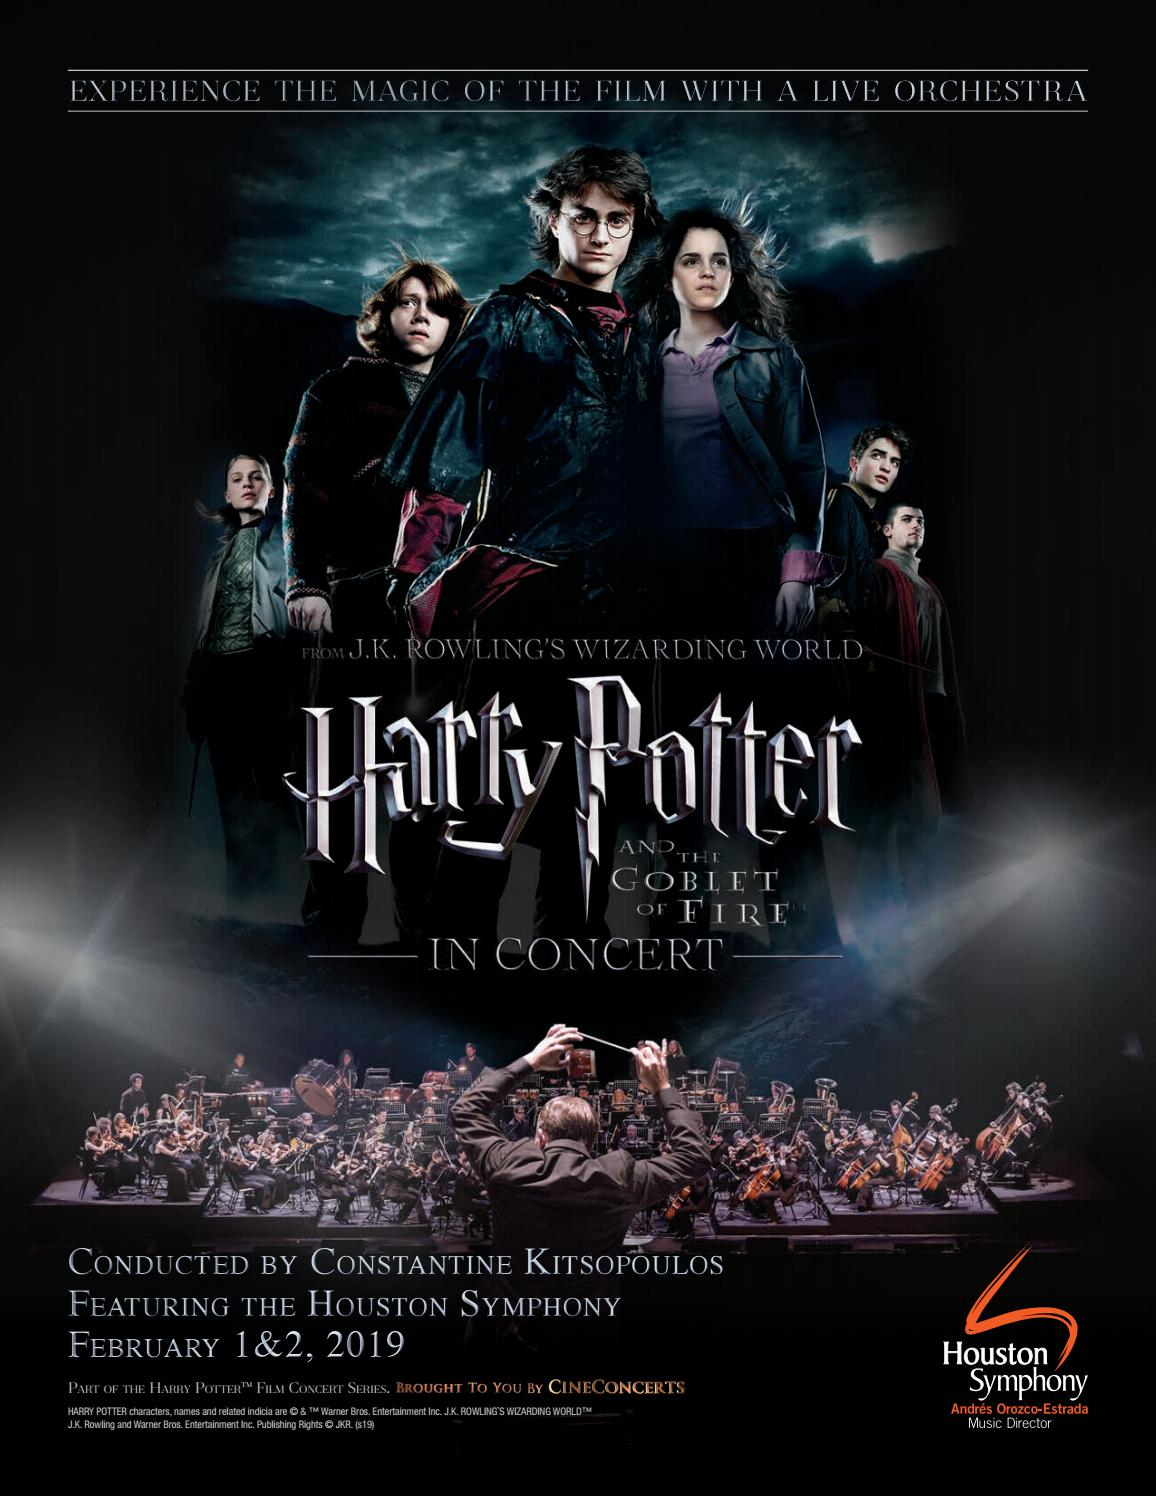 Harry Potter and the Goblet of Fire — In Concert™ by Houston